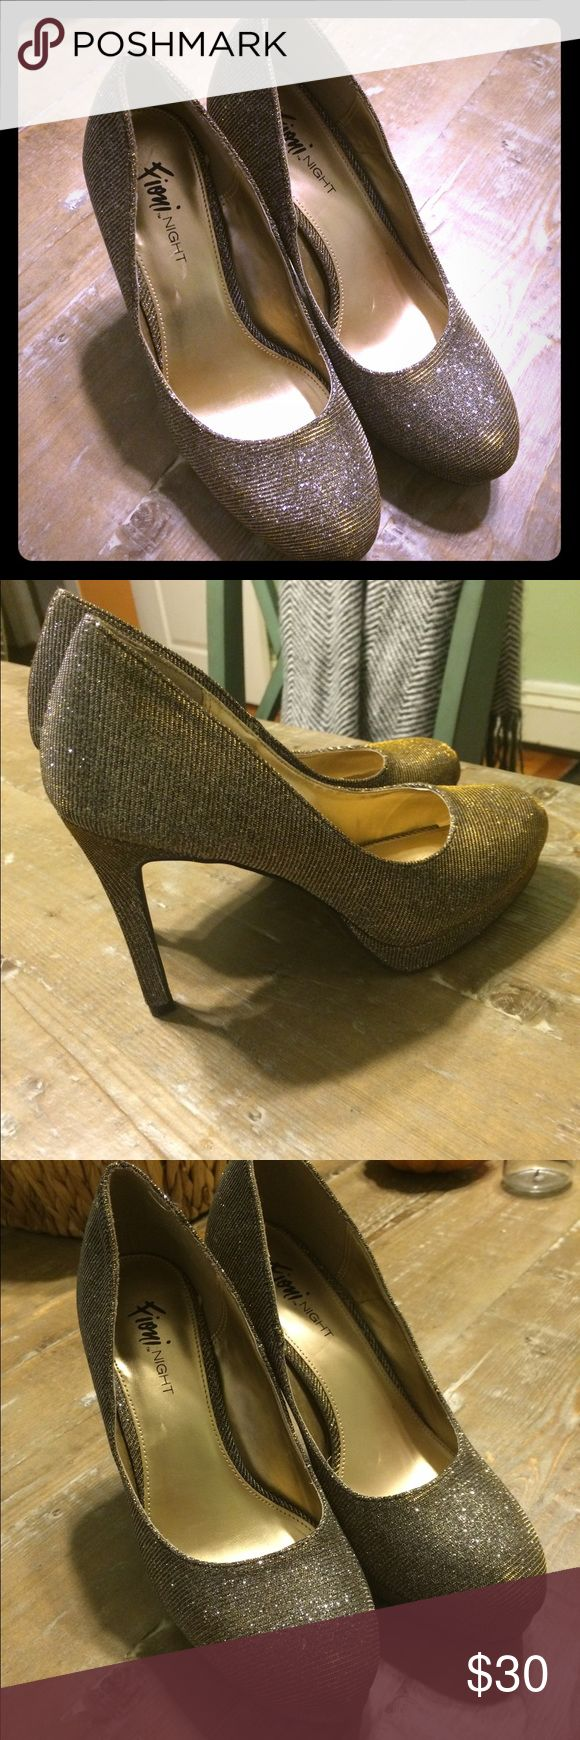 Shimmer gold stilettos I call these my News Years Eve shoes! Great for a classy night out. Walkable heel, very comfortable. I wore one night at New Years last year, so practically new! FIONI Clothing Shoes Heels